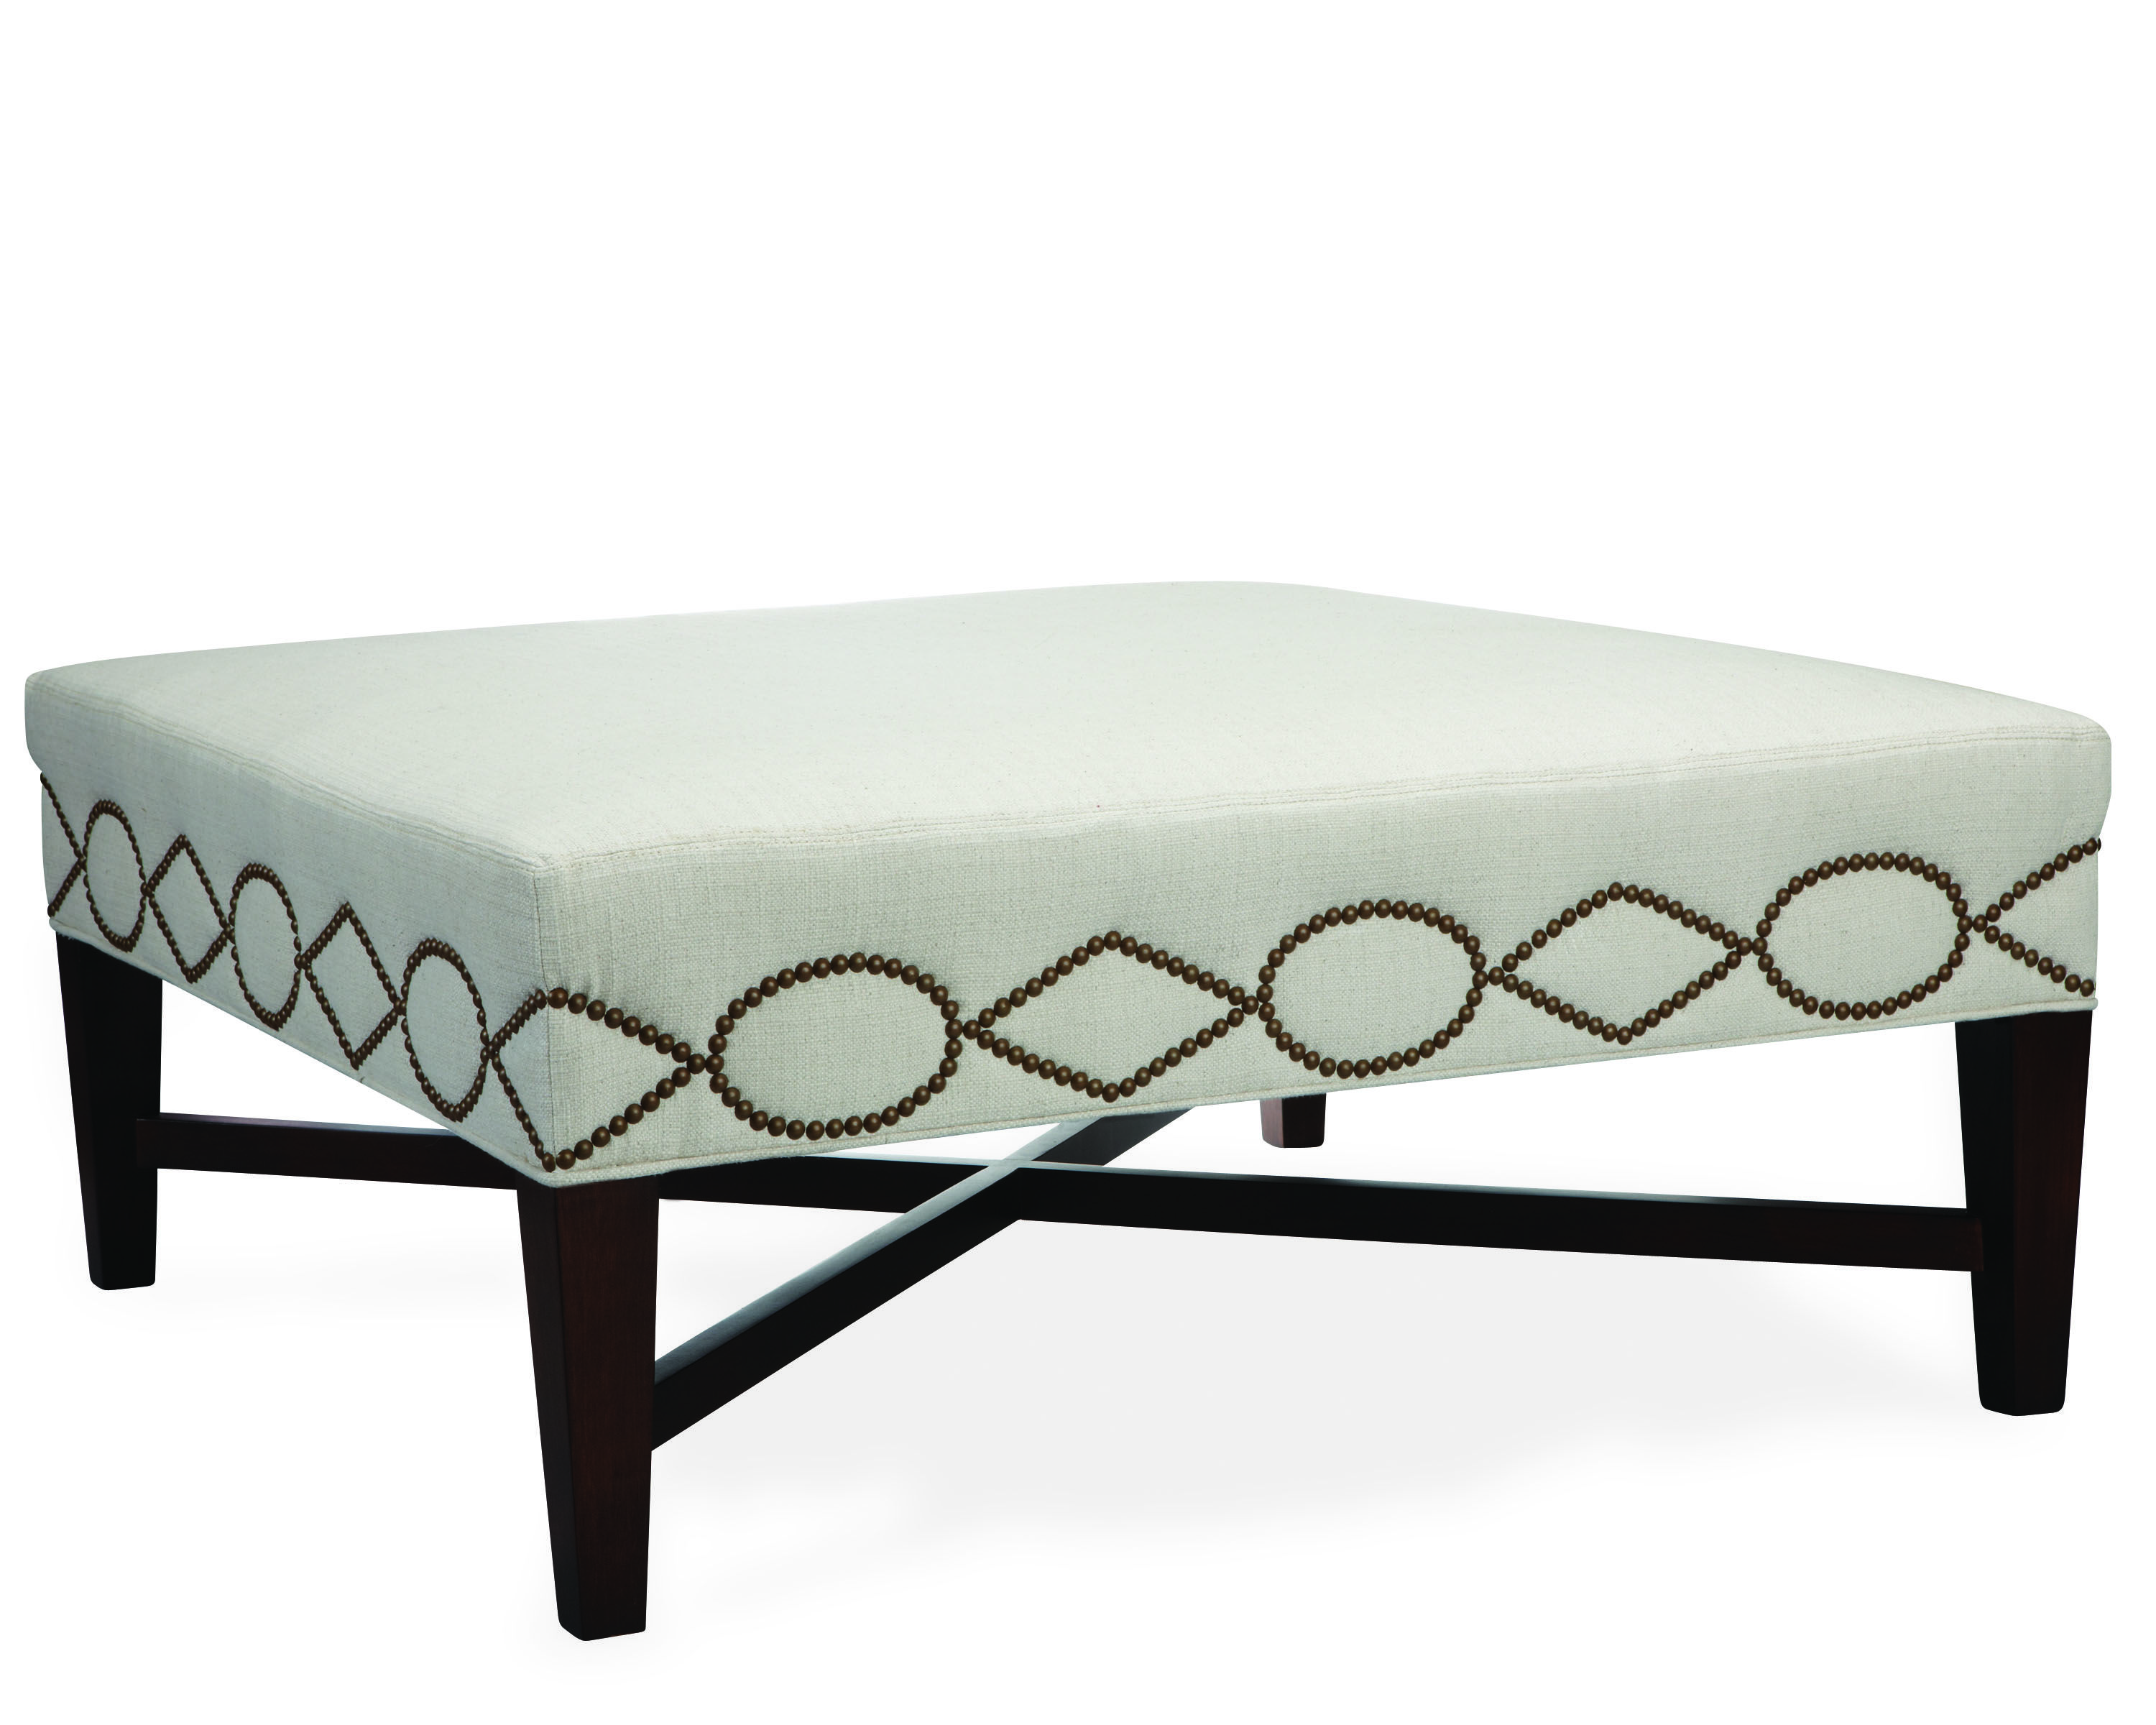 Terrific Lee Cocktail Ottoman In Chambers Linen Lee Ottomans Ibusinesslaw Wood Chair Design Ideas Ibusinesslaworg